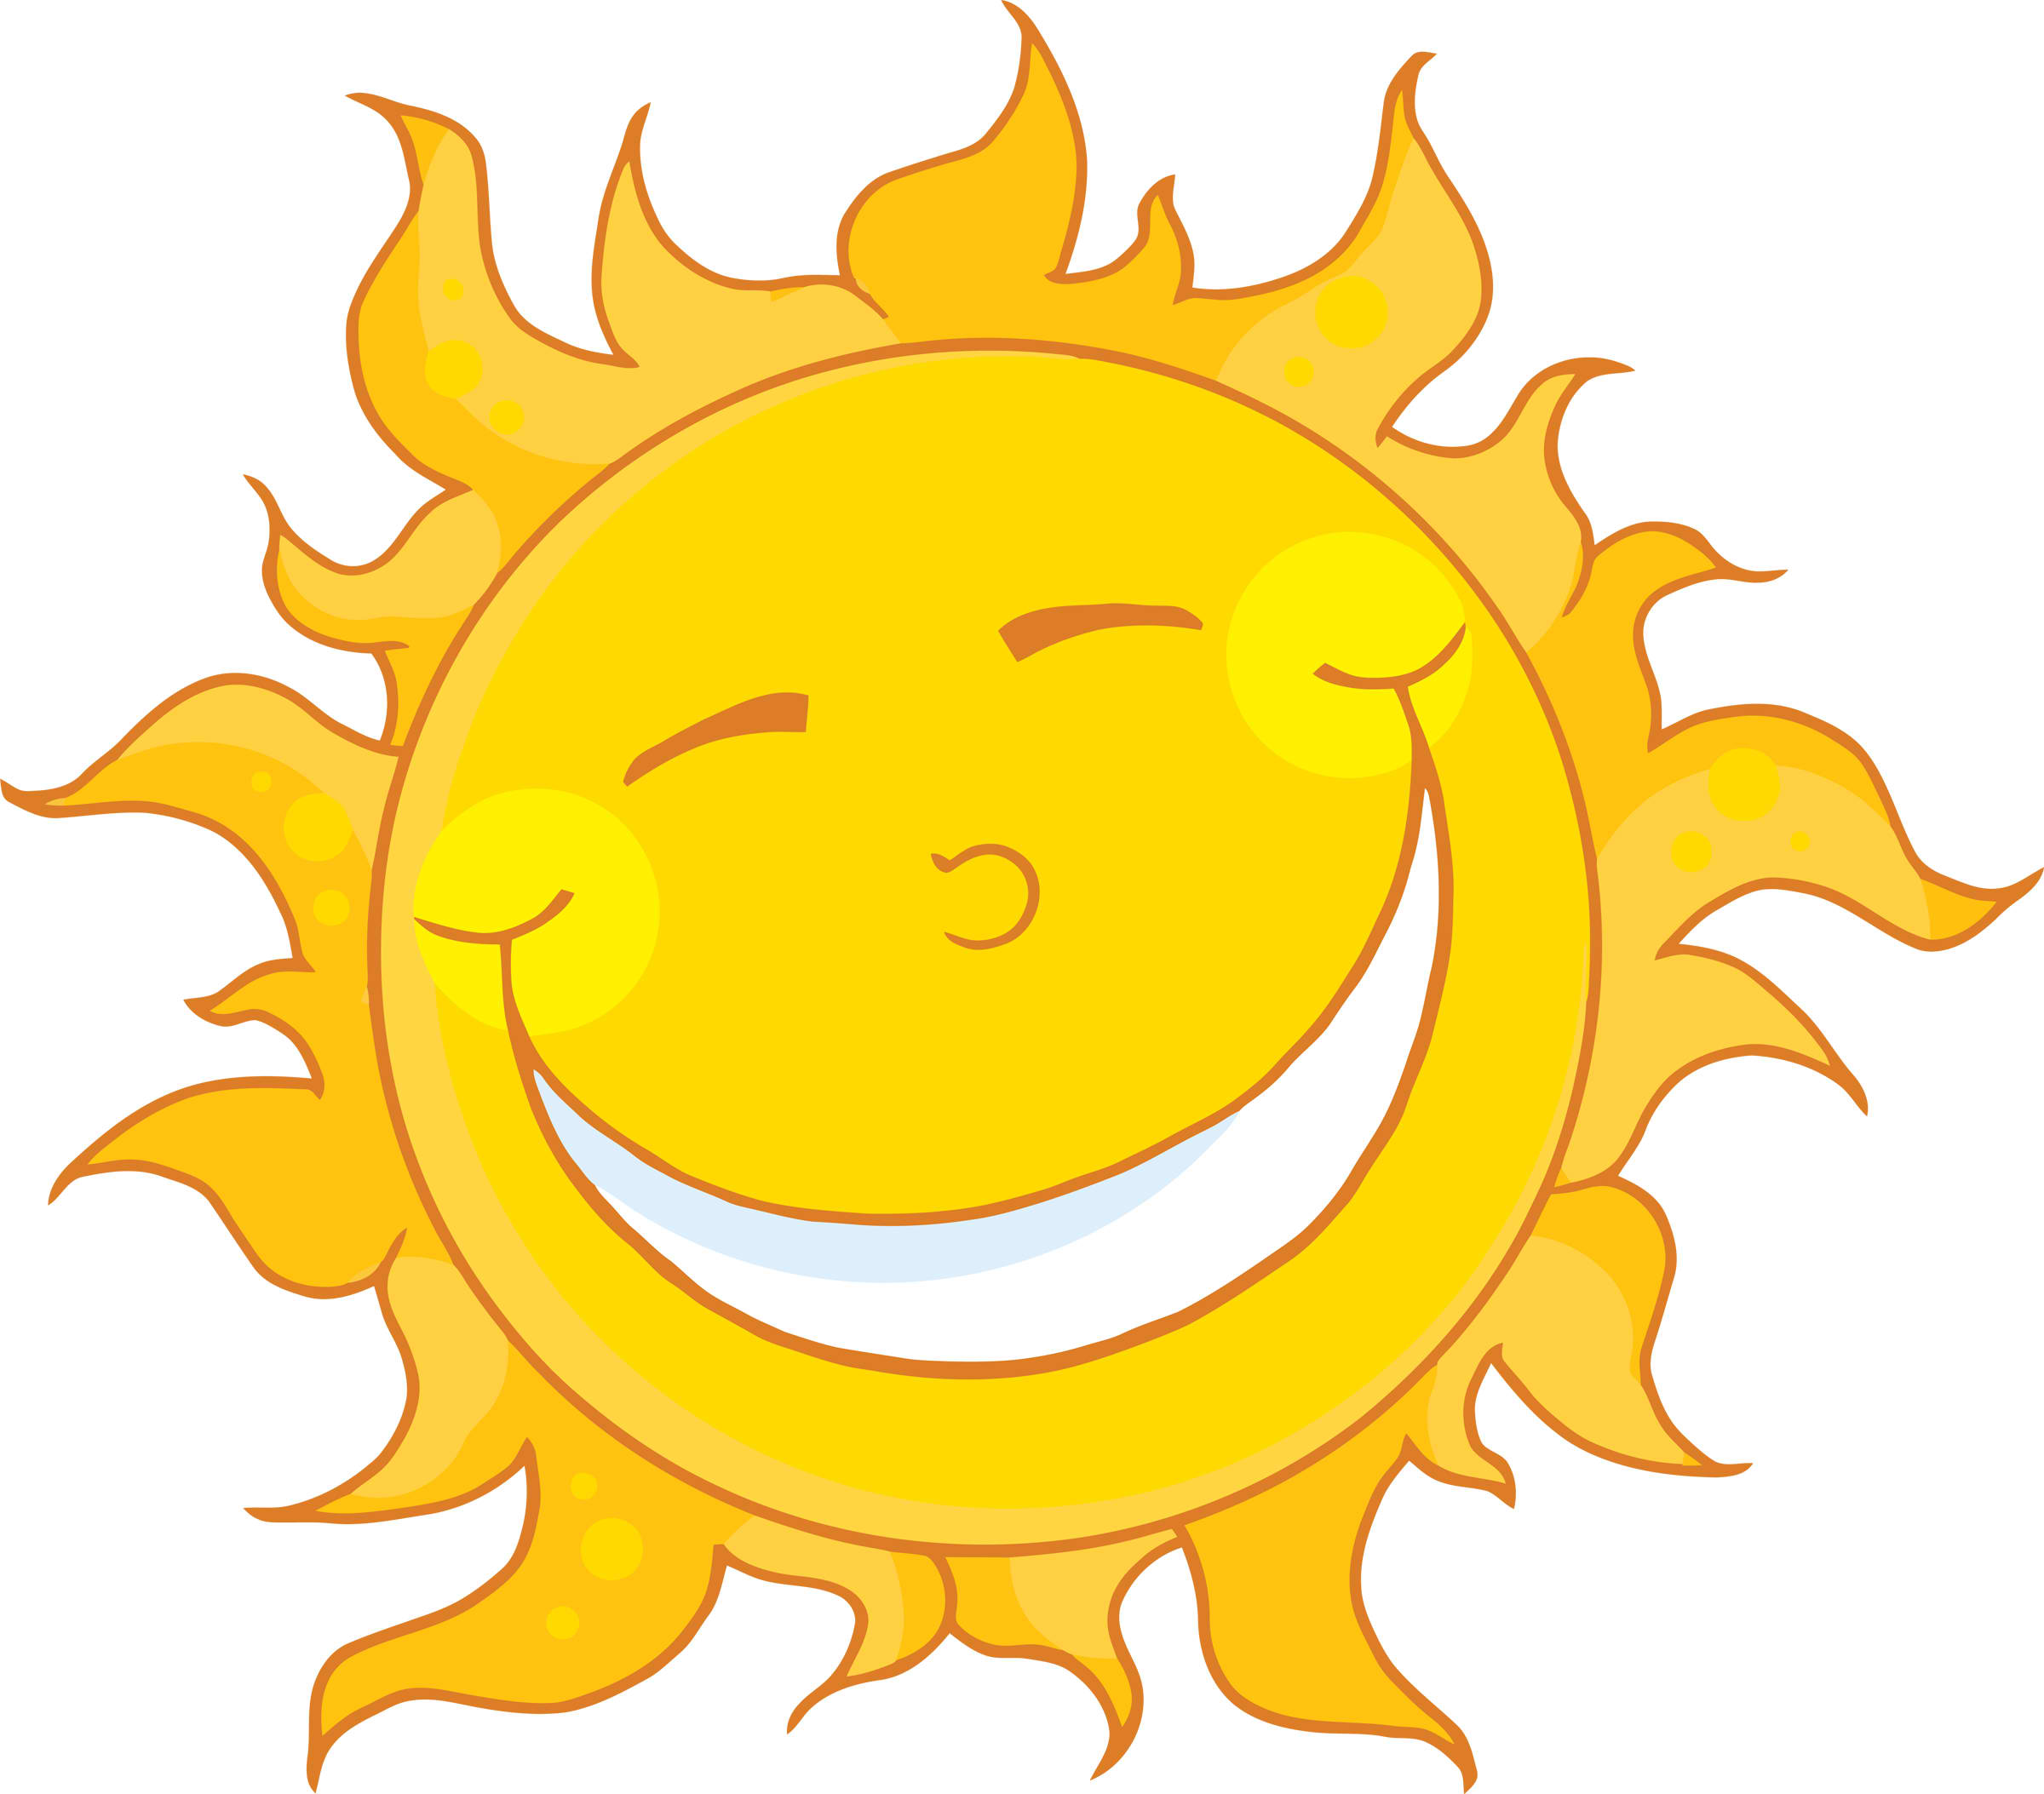 Happy Sun PNG No Background - 144363